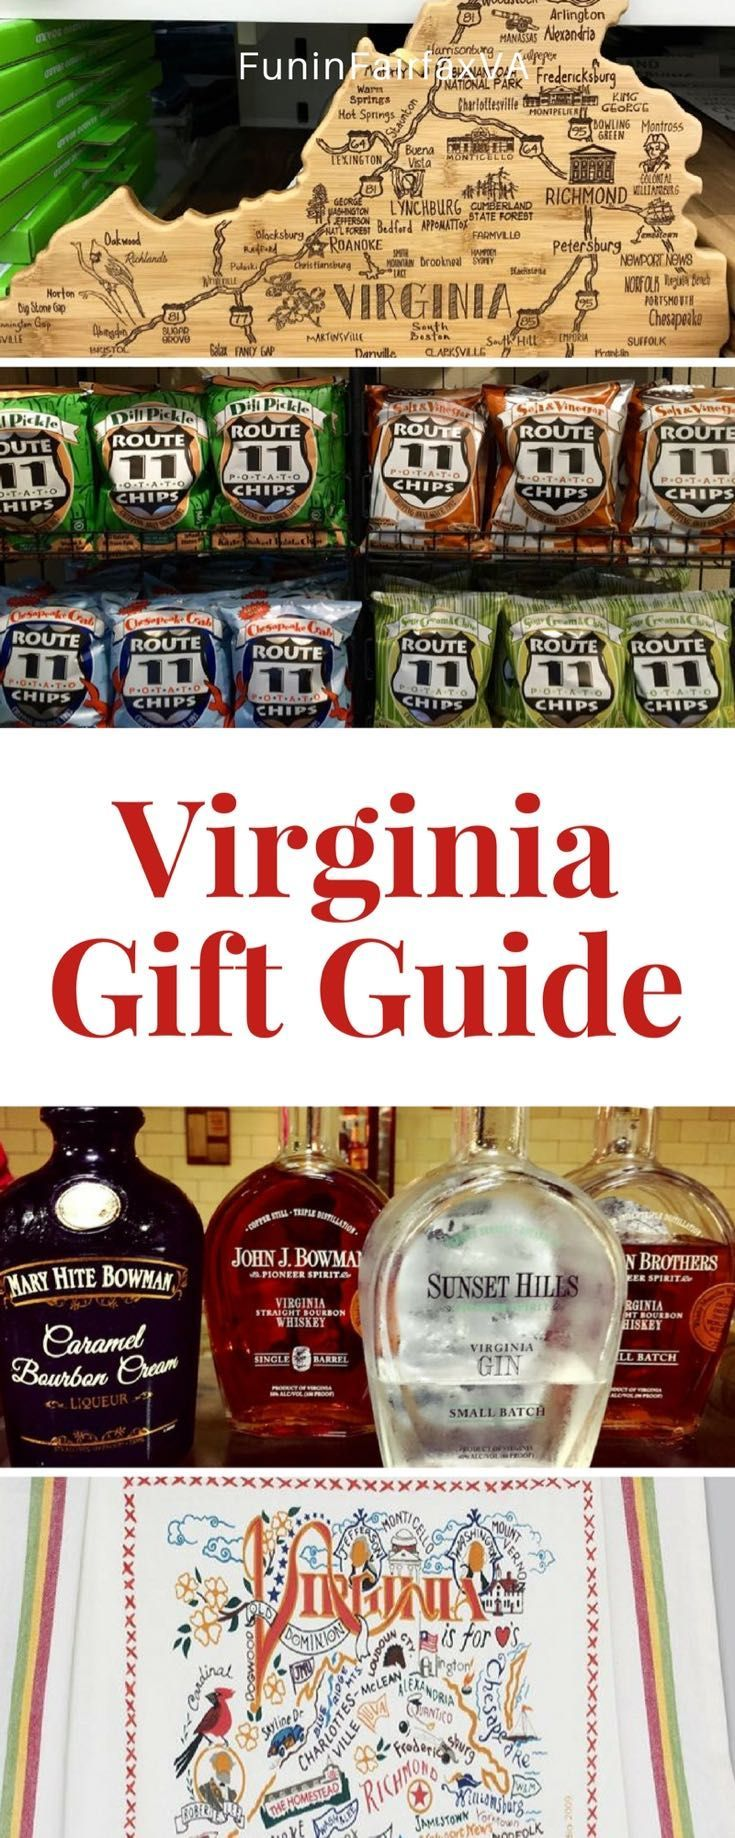 Virginia US Travel   Find the perfect present with our Virginia Gift Guide, full of unique, fun, and useful gifts for residents, visitors, and anyone who loves Virginia.  #holidaygifts #shopping #virginia